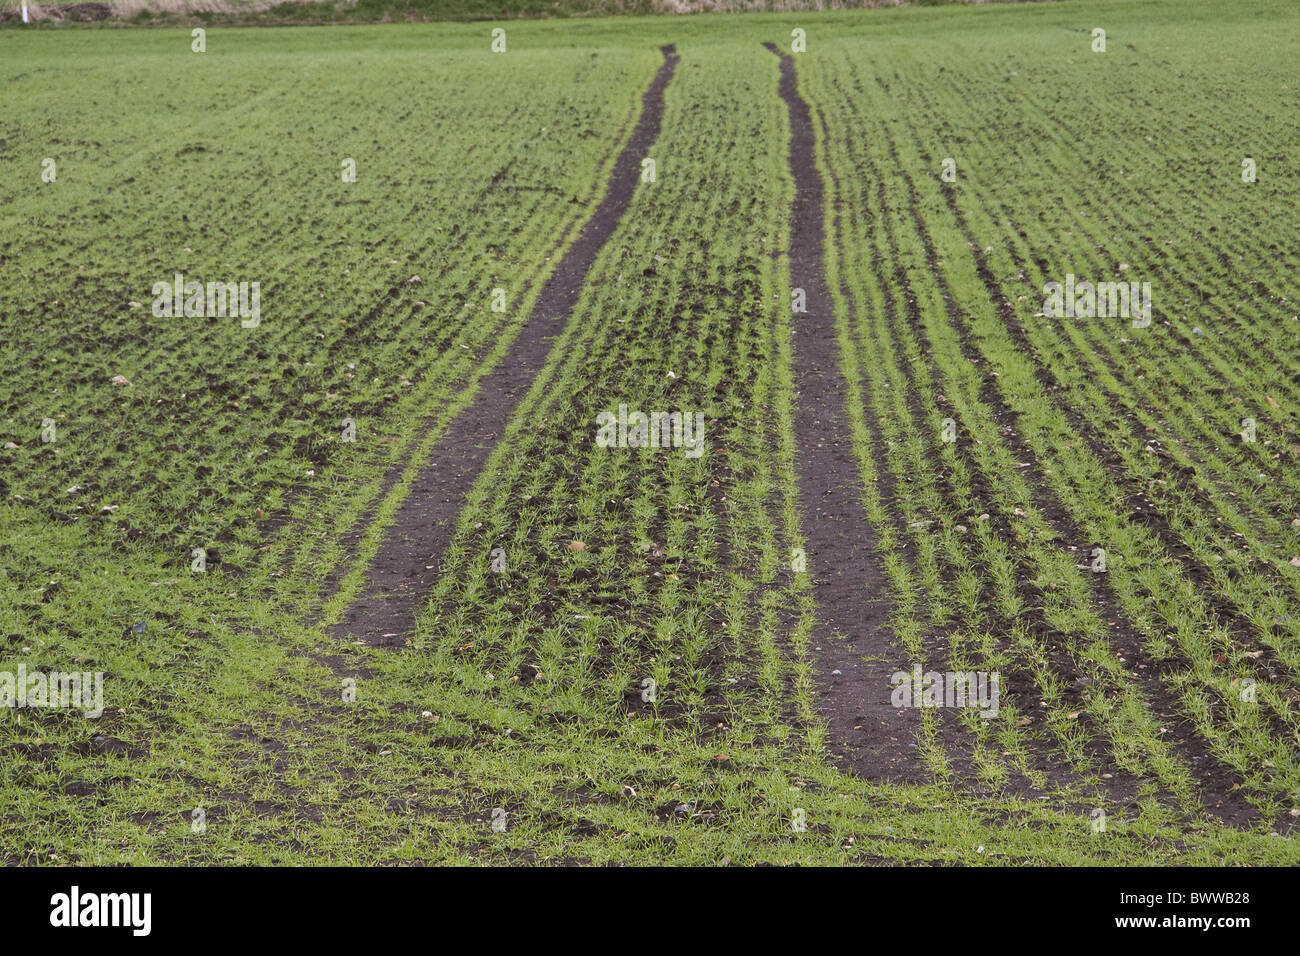 Spring sown wheat with tractor tramlines Stock Photo